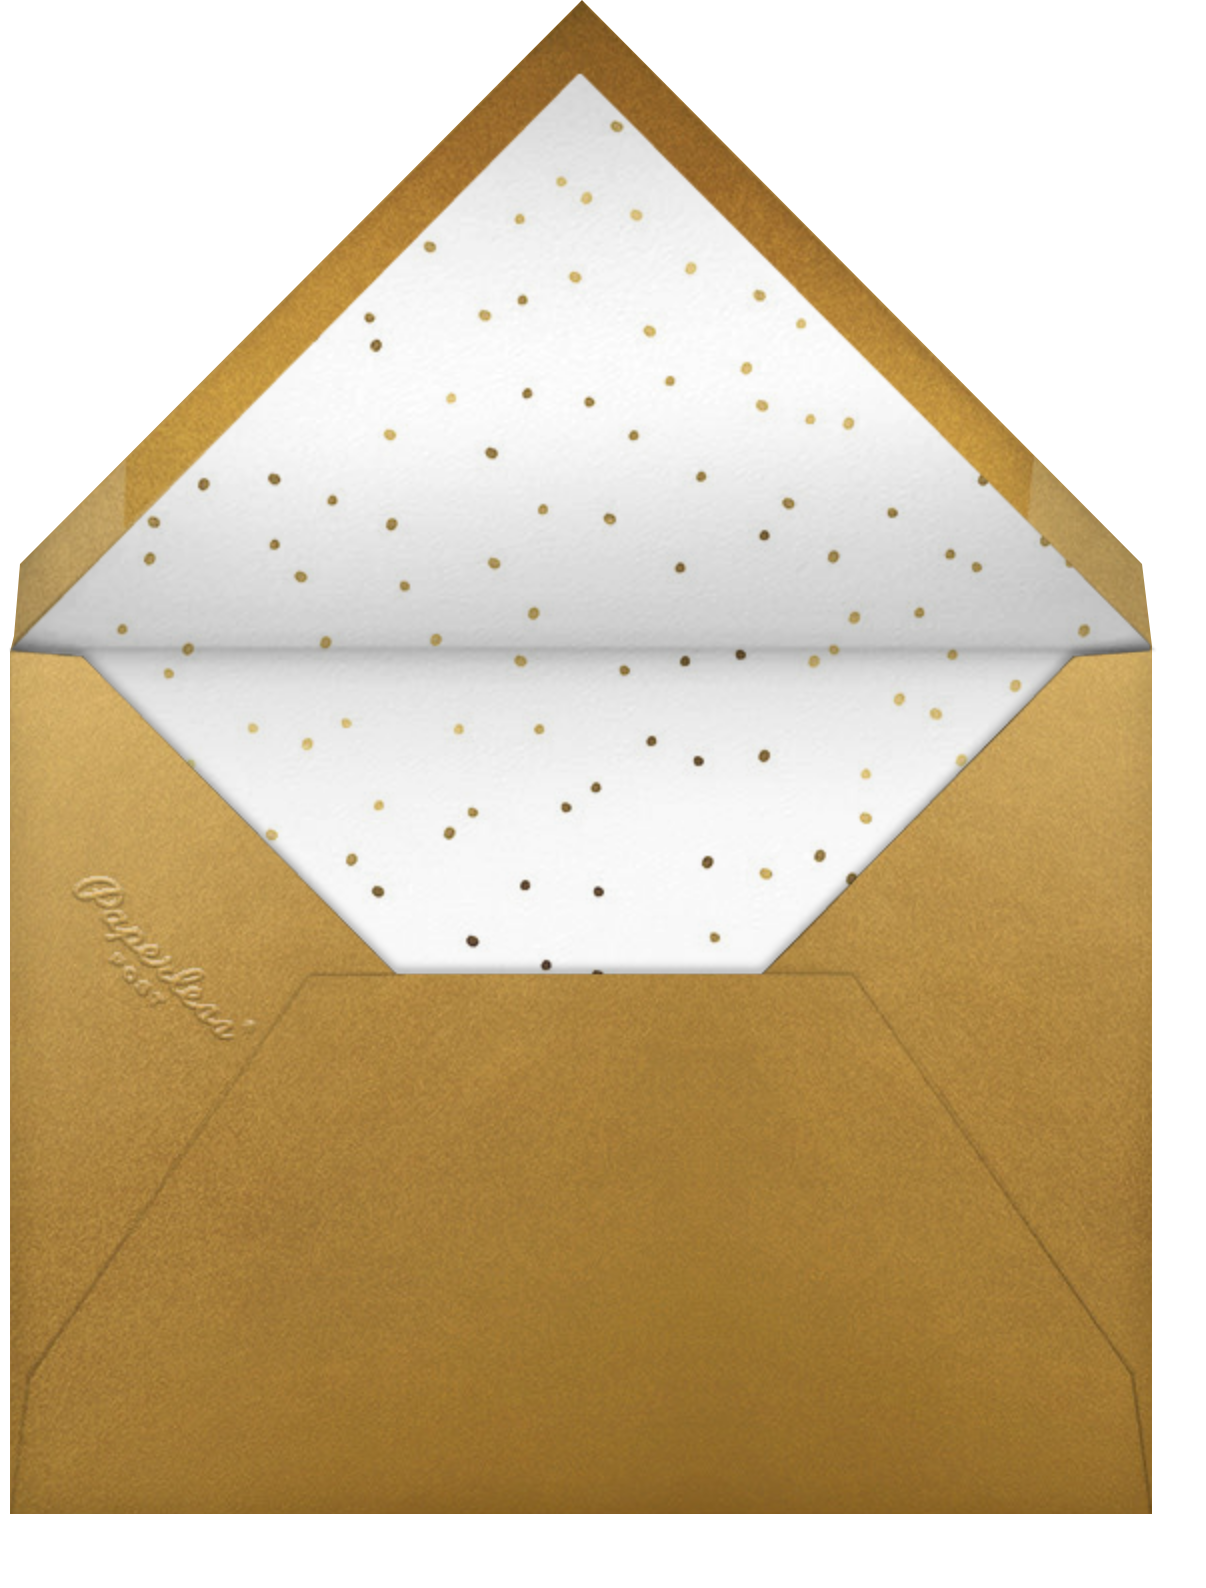 Curlicue Cheers - Caviar - Paperless Post - New Year's Eve - envelope back